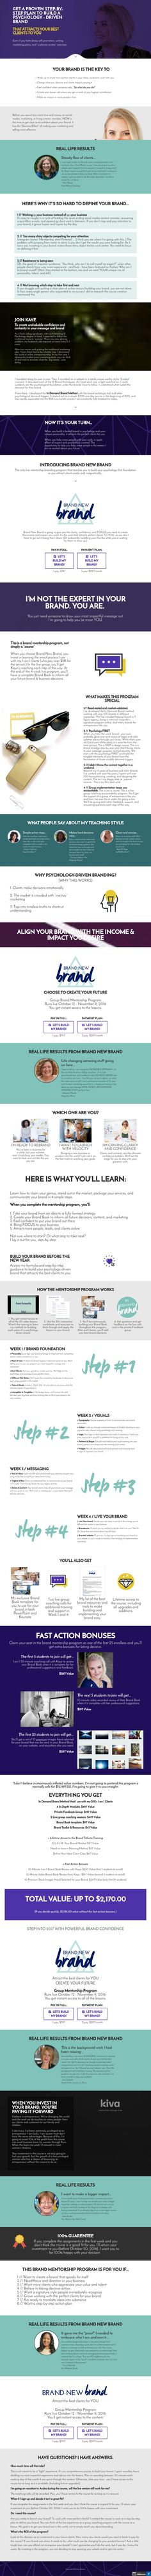 Brand New Brand is a live group coaching program for people who need to rebrand, launch, or realign their brand. https://brandtrifecta.com/joinbnb